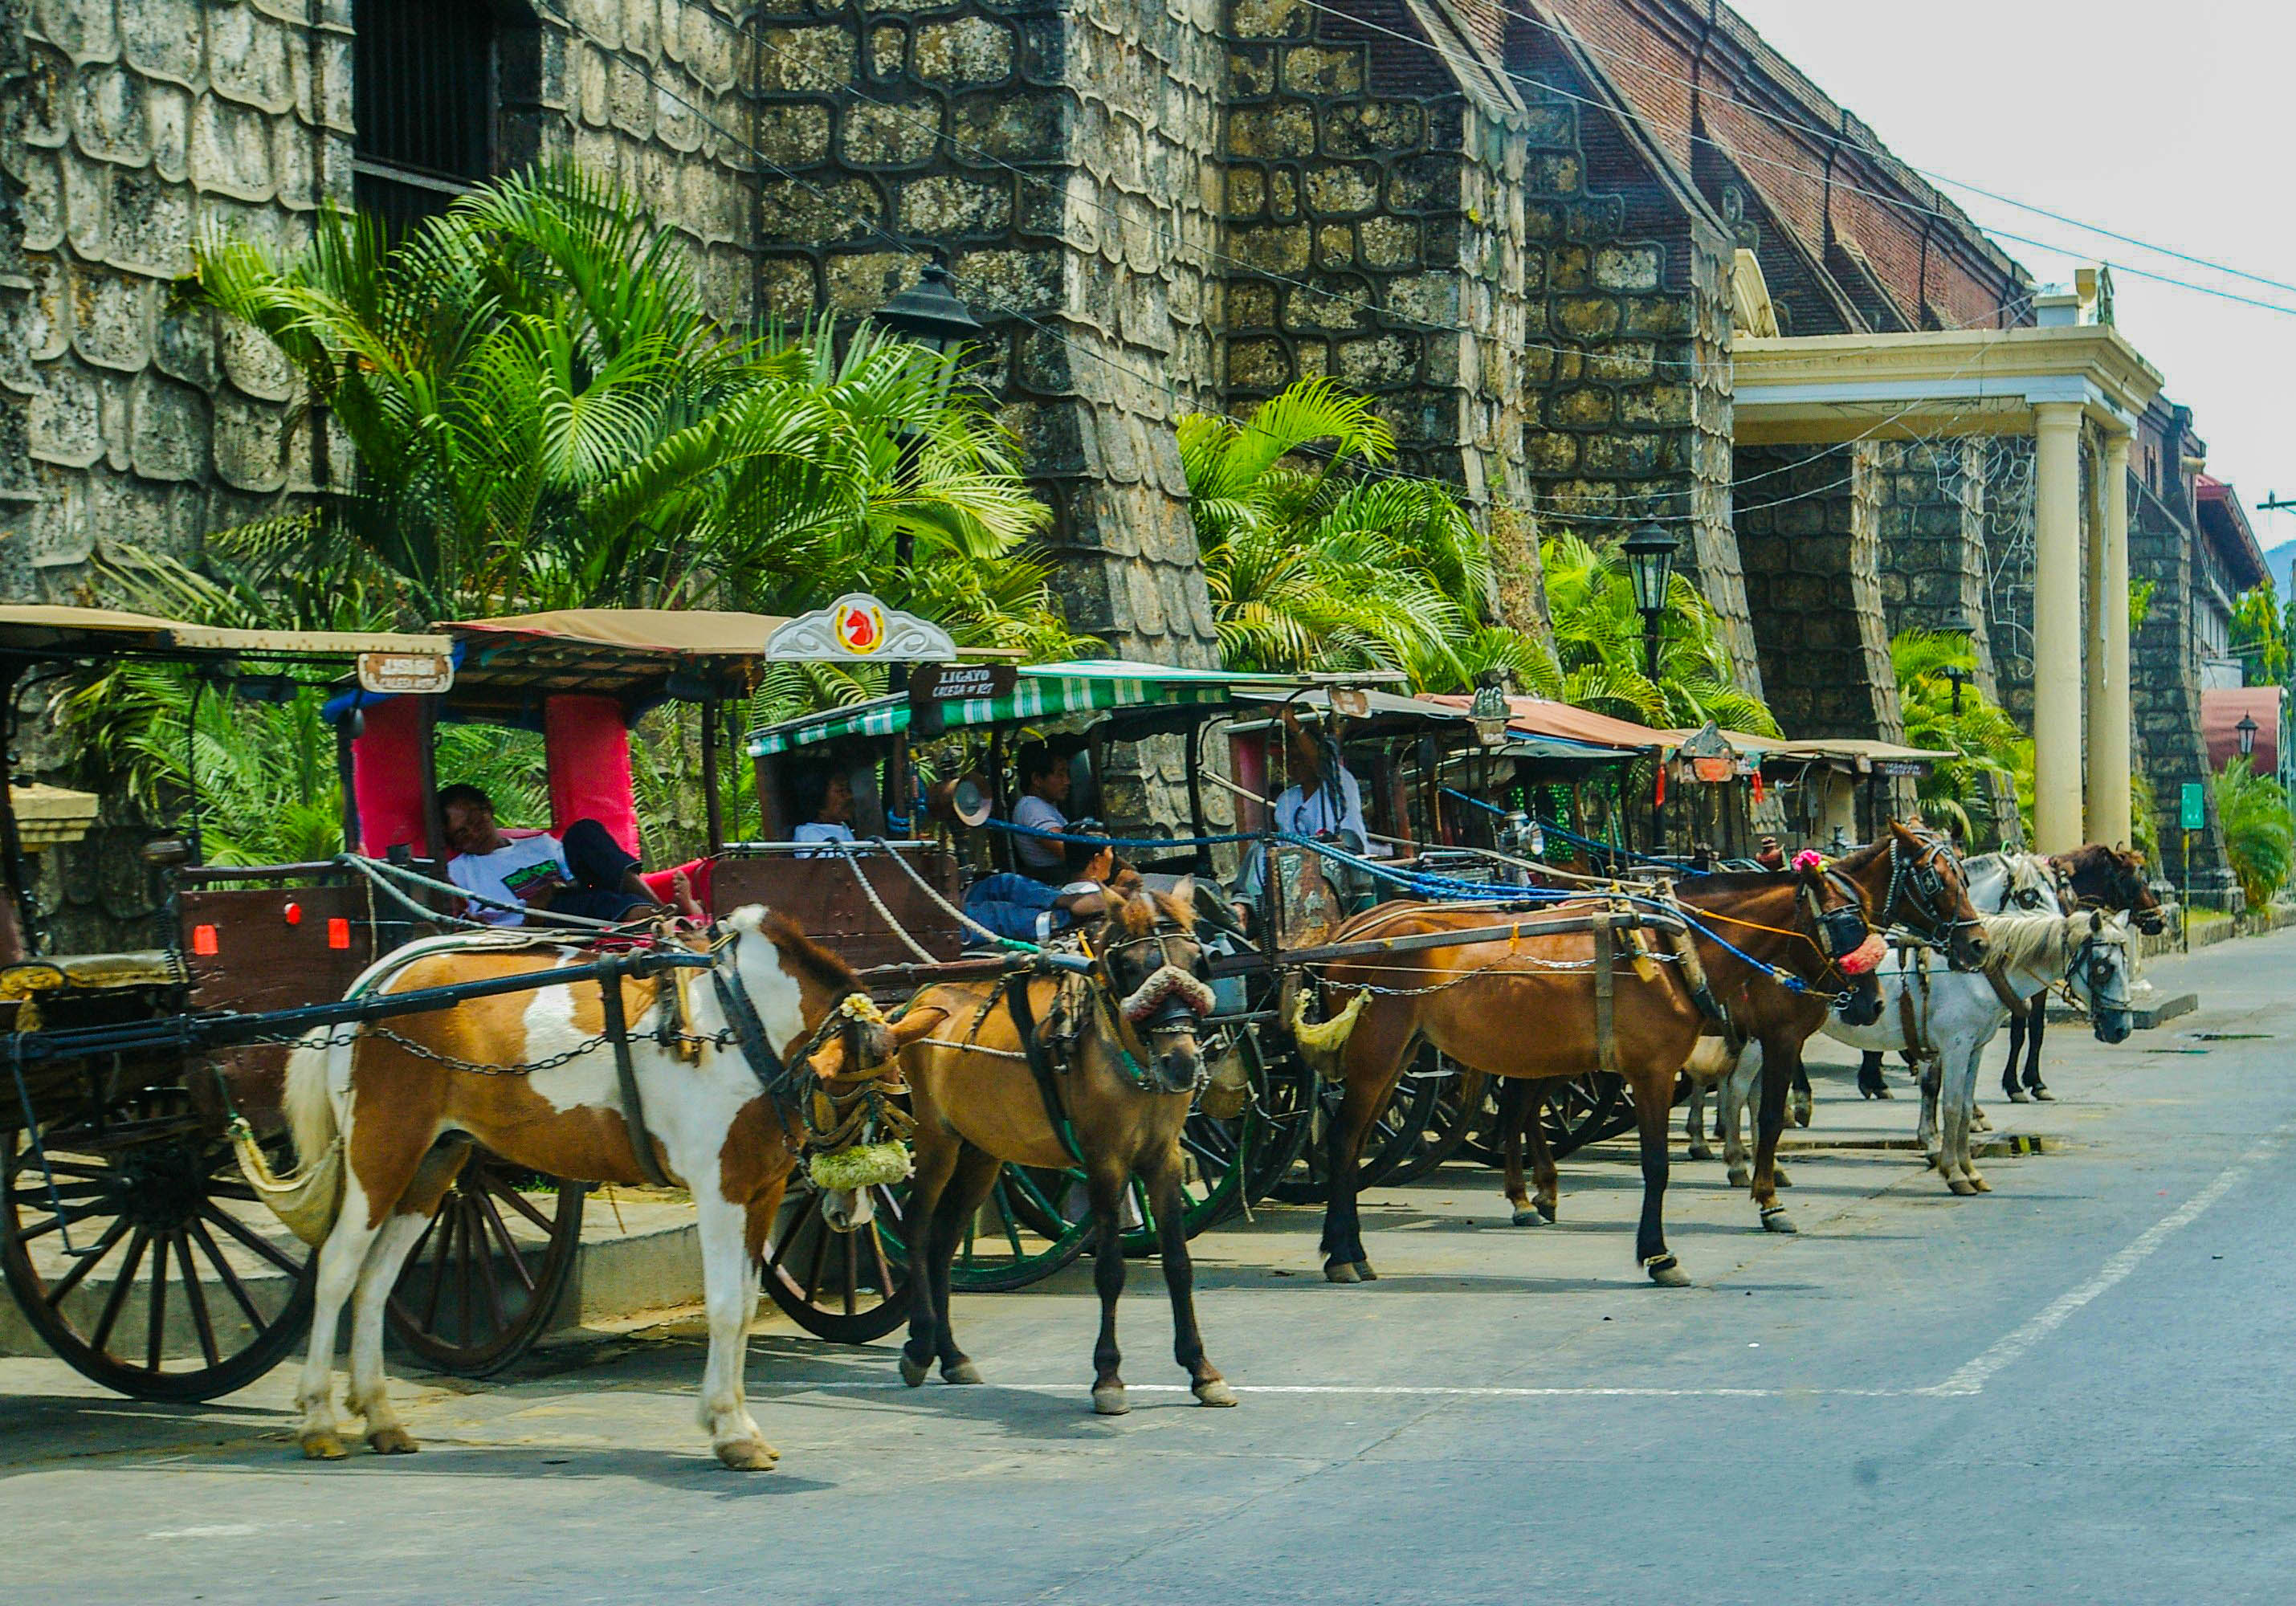 A line of calesas (horse-drawn carriages) wait while their drivers rest in Vigan City, one of the most amazing places to visit in the Philippines